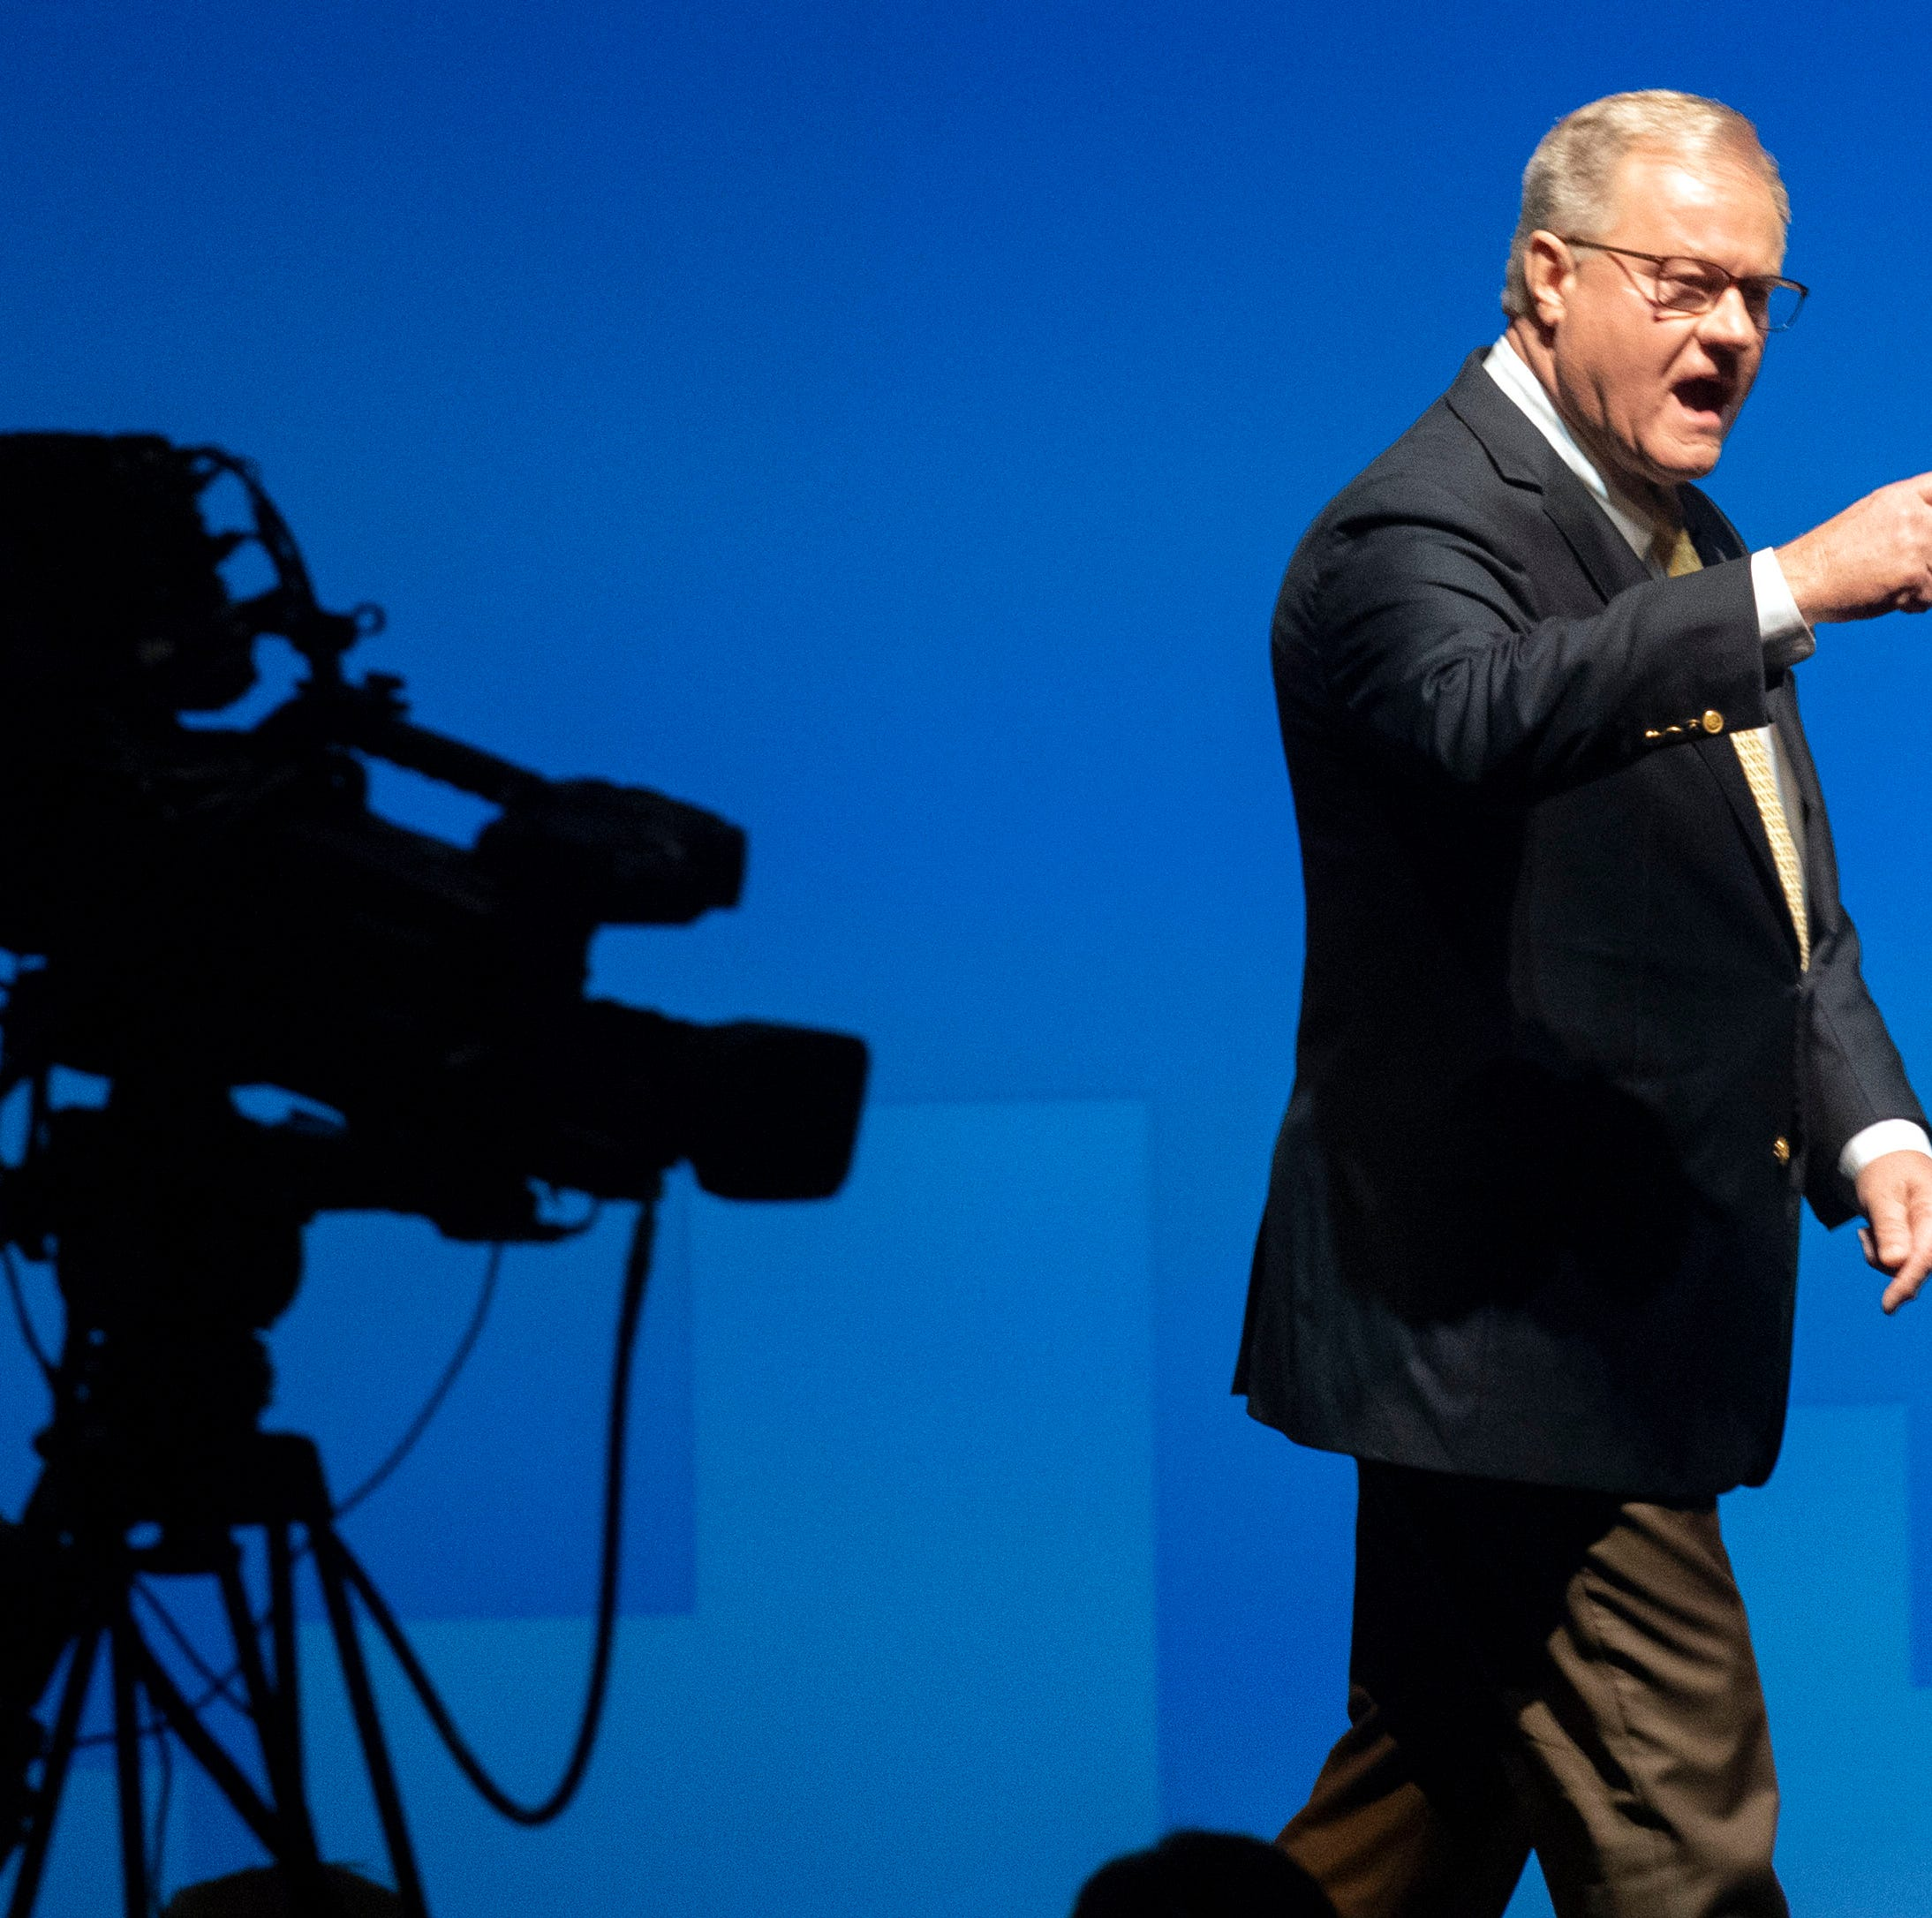 Scott Wagner to Gov. Tom Wolf: 'I'm going to stomp all over your face with golf spikes'